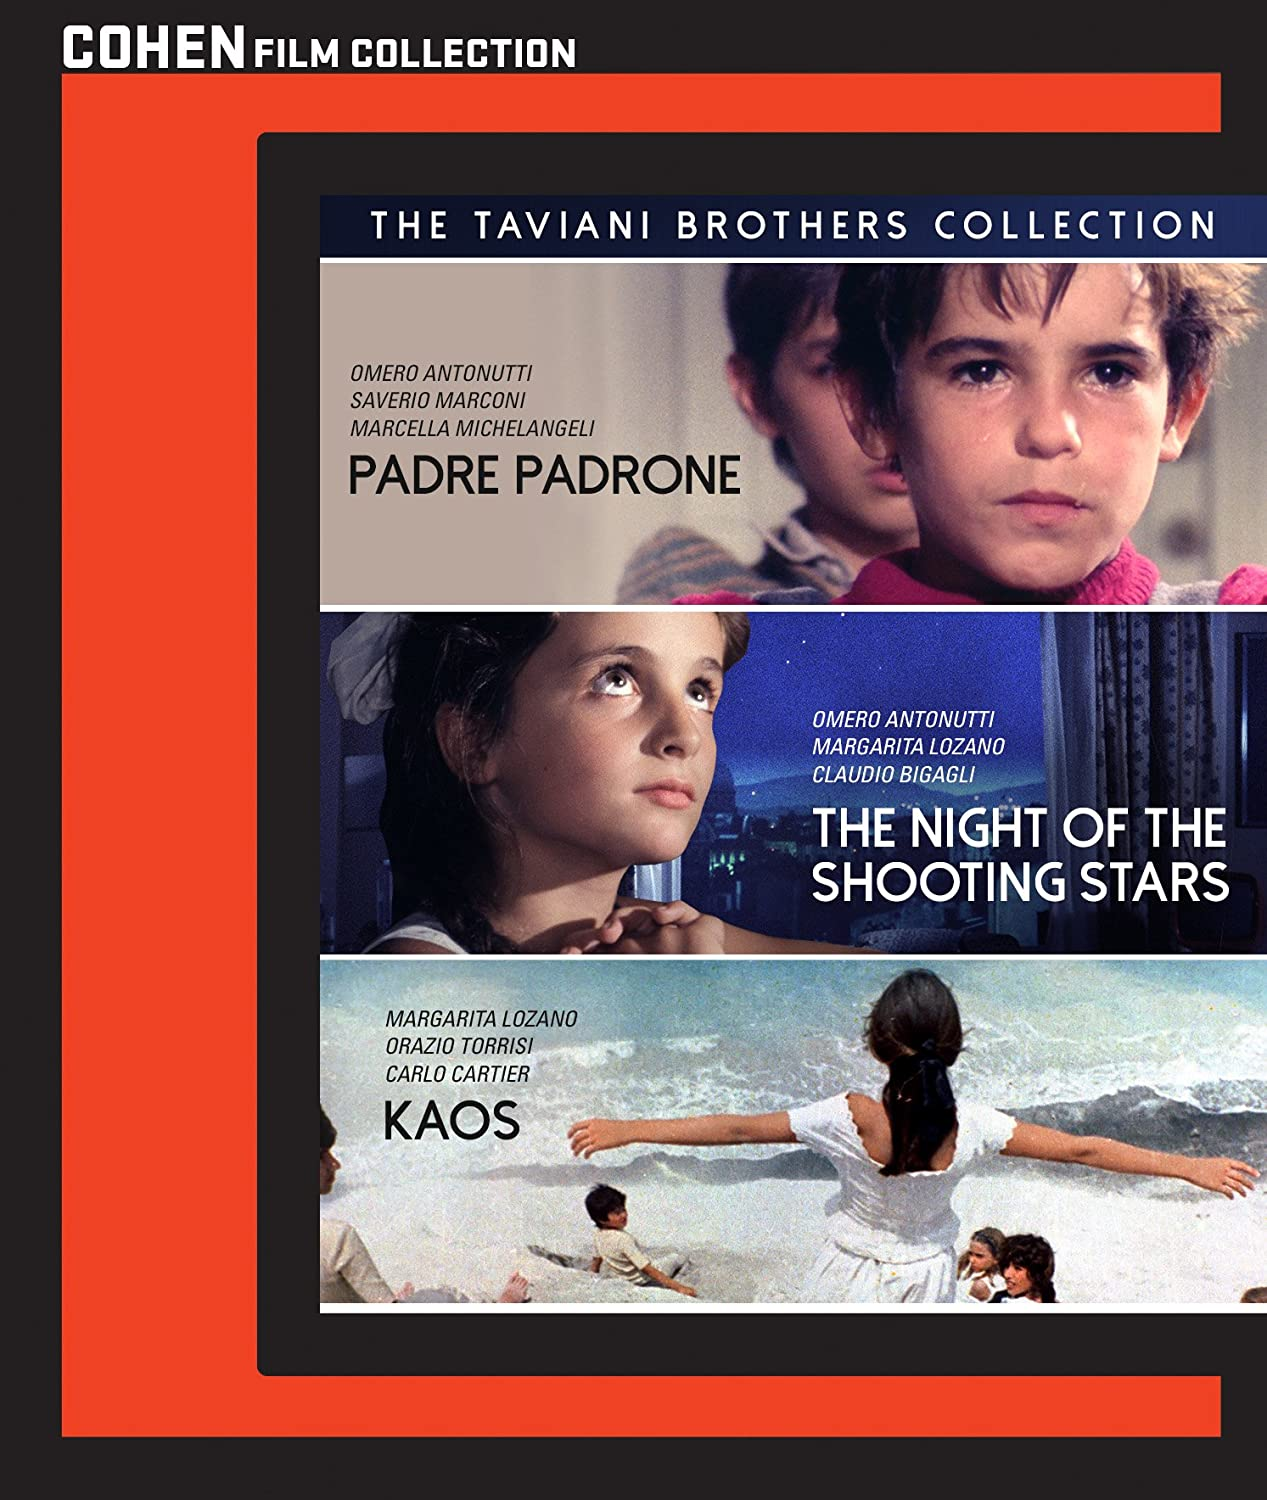 The Taviani Brothers collection DVD image